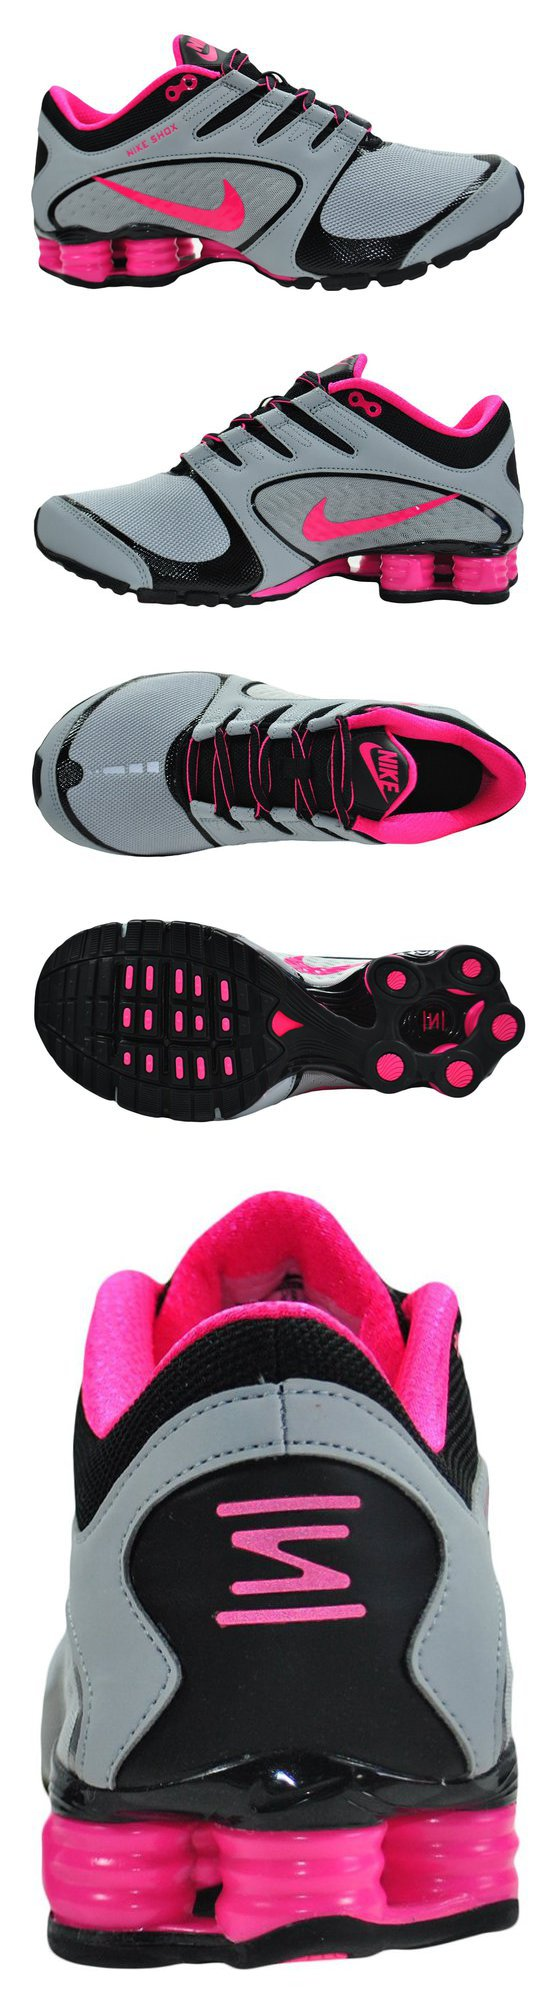 955471022450 ... 2000 - Nike Womens Shox Vaeda Wolf Grey Vivid Pink Black Synthetic  Running Shoes ...